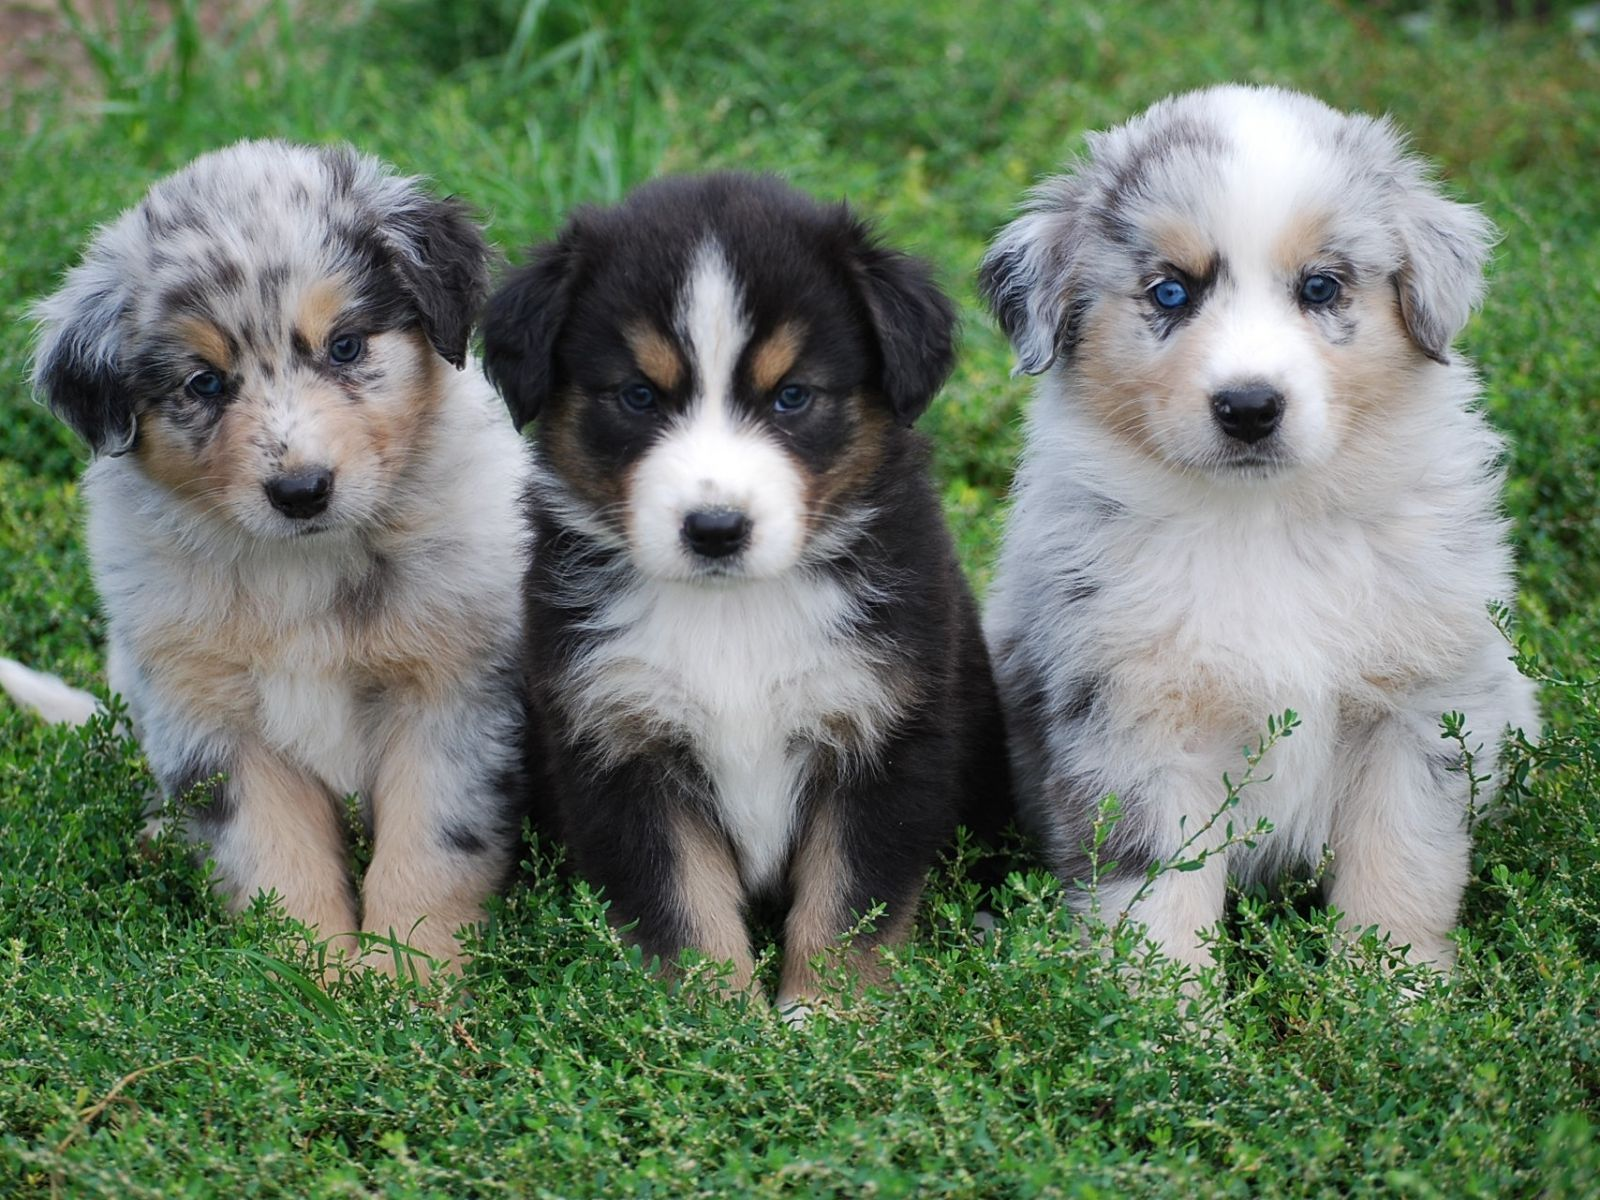 Pin By Horse Lover 8 On Adorable Animals Australian Shepherd Puppies Mini Australian Shepherds Cute Animals